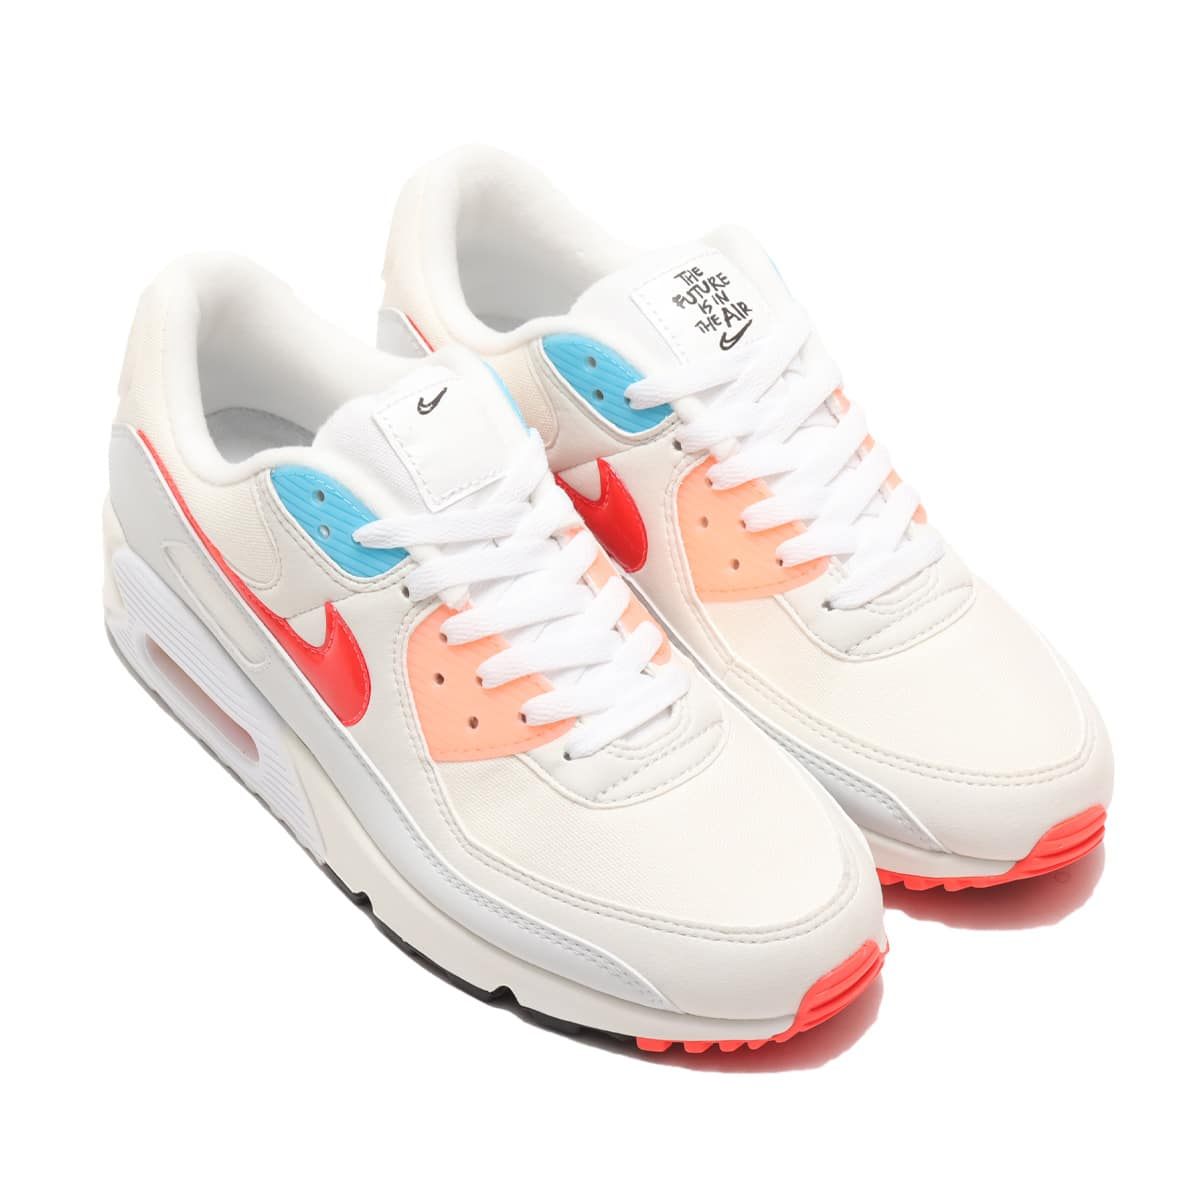 NIKE AIR MAX 90 SAIL/INFRARED-WHITE-PHOTON DUST 21SP-I_photo_large